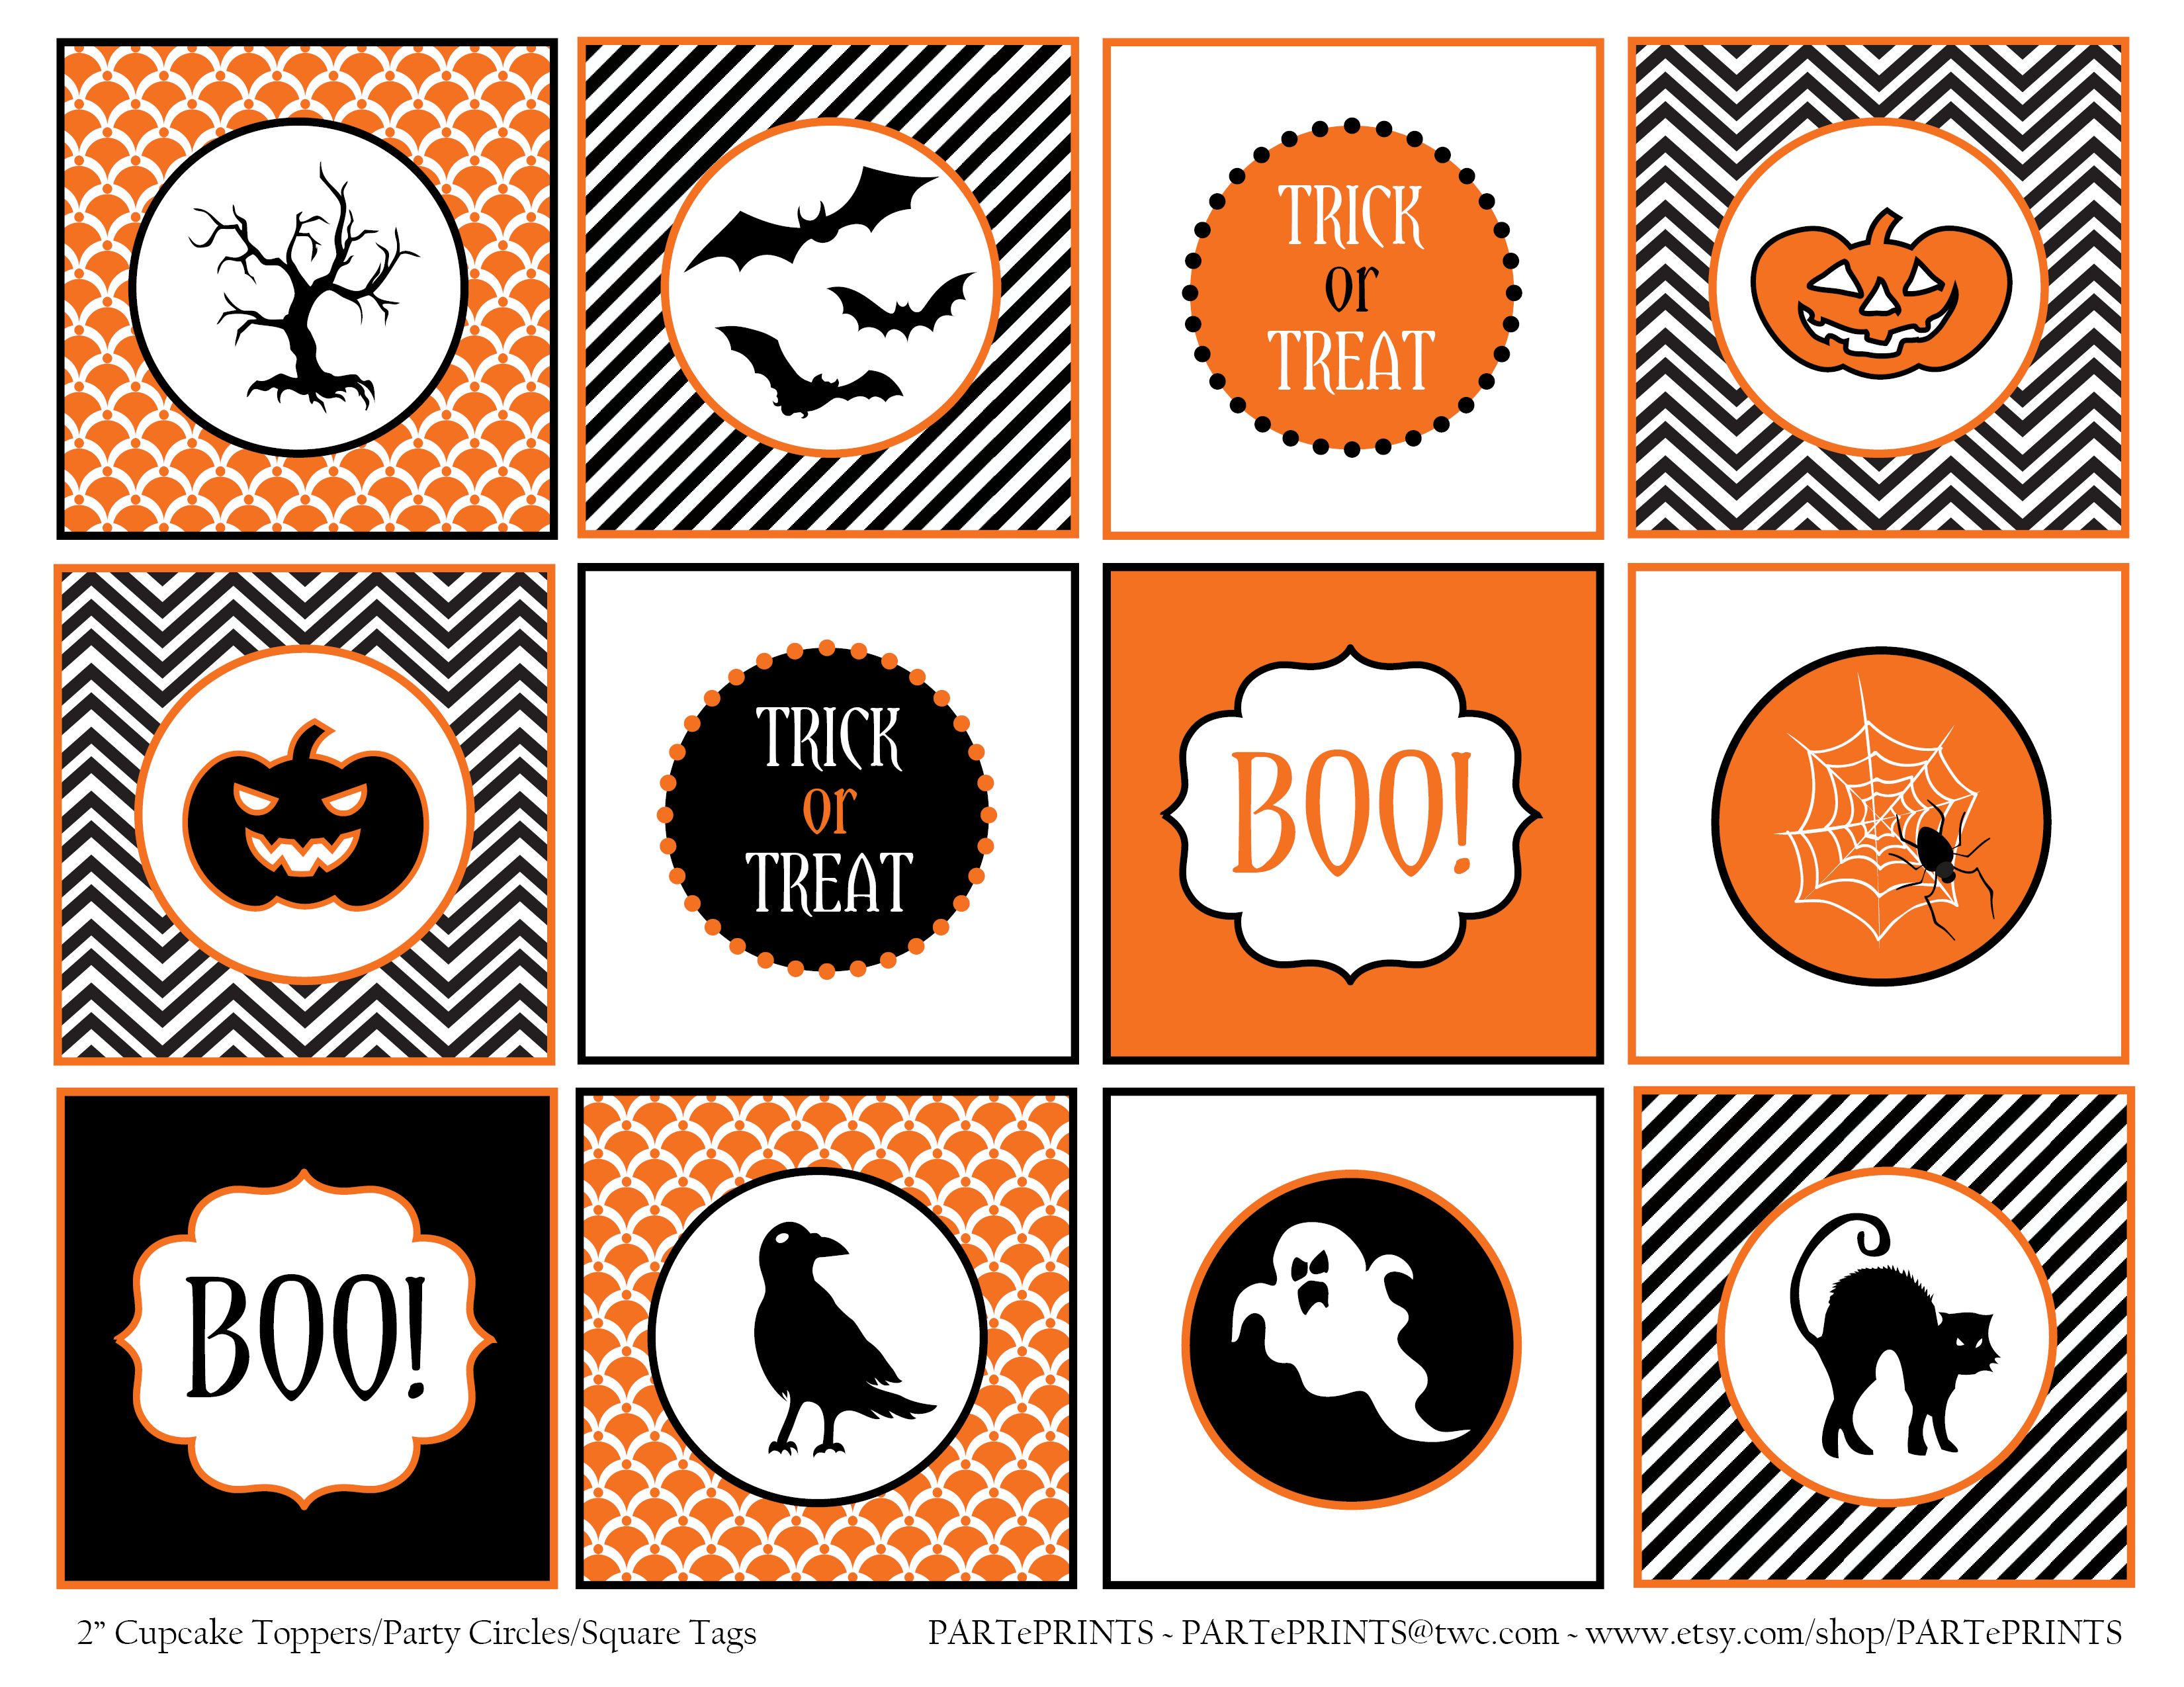 Free Halloween Printables From Parteprints